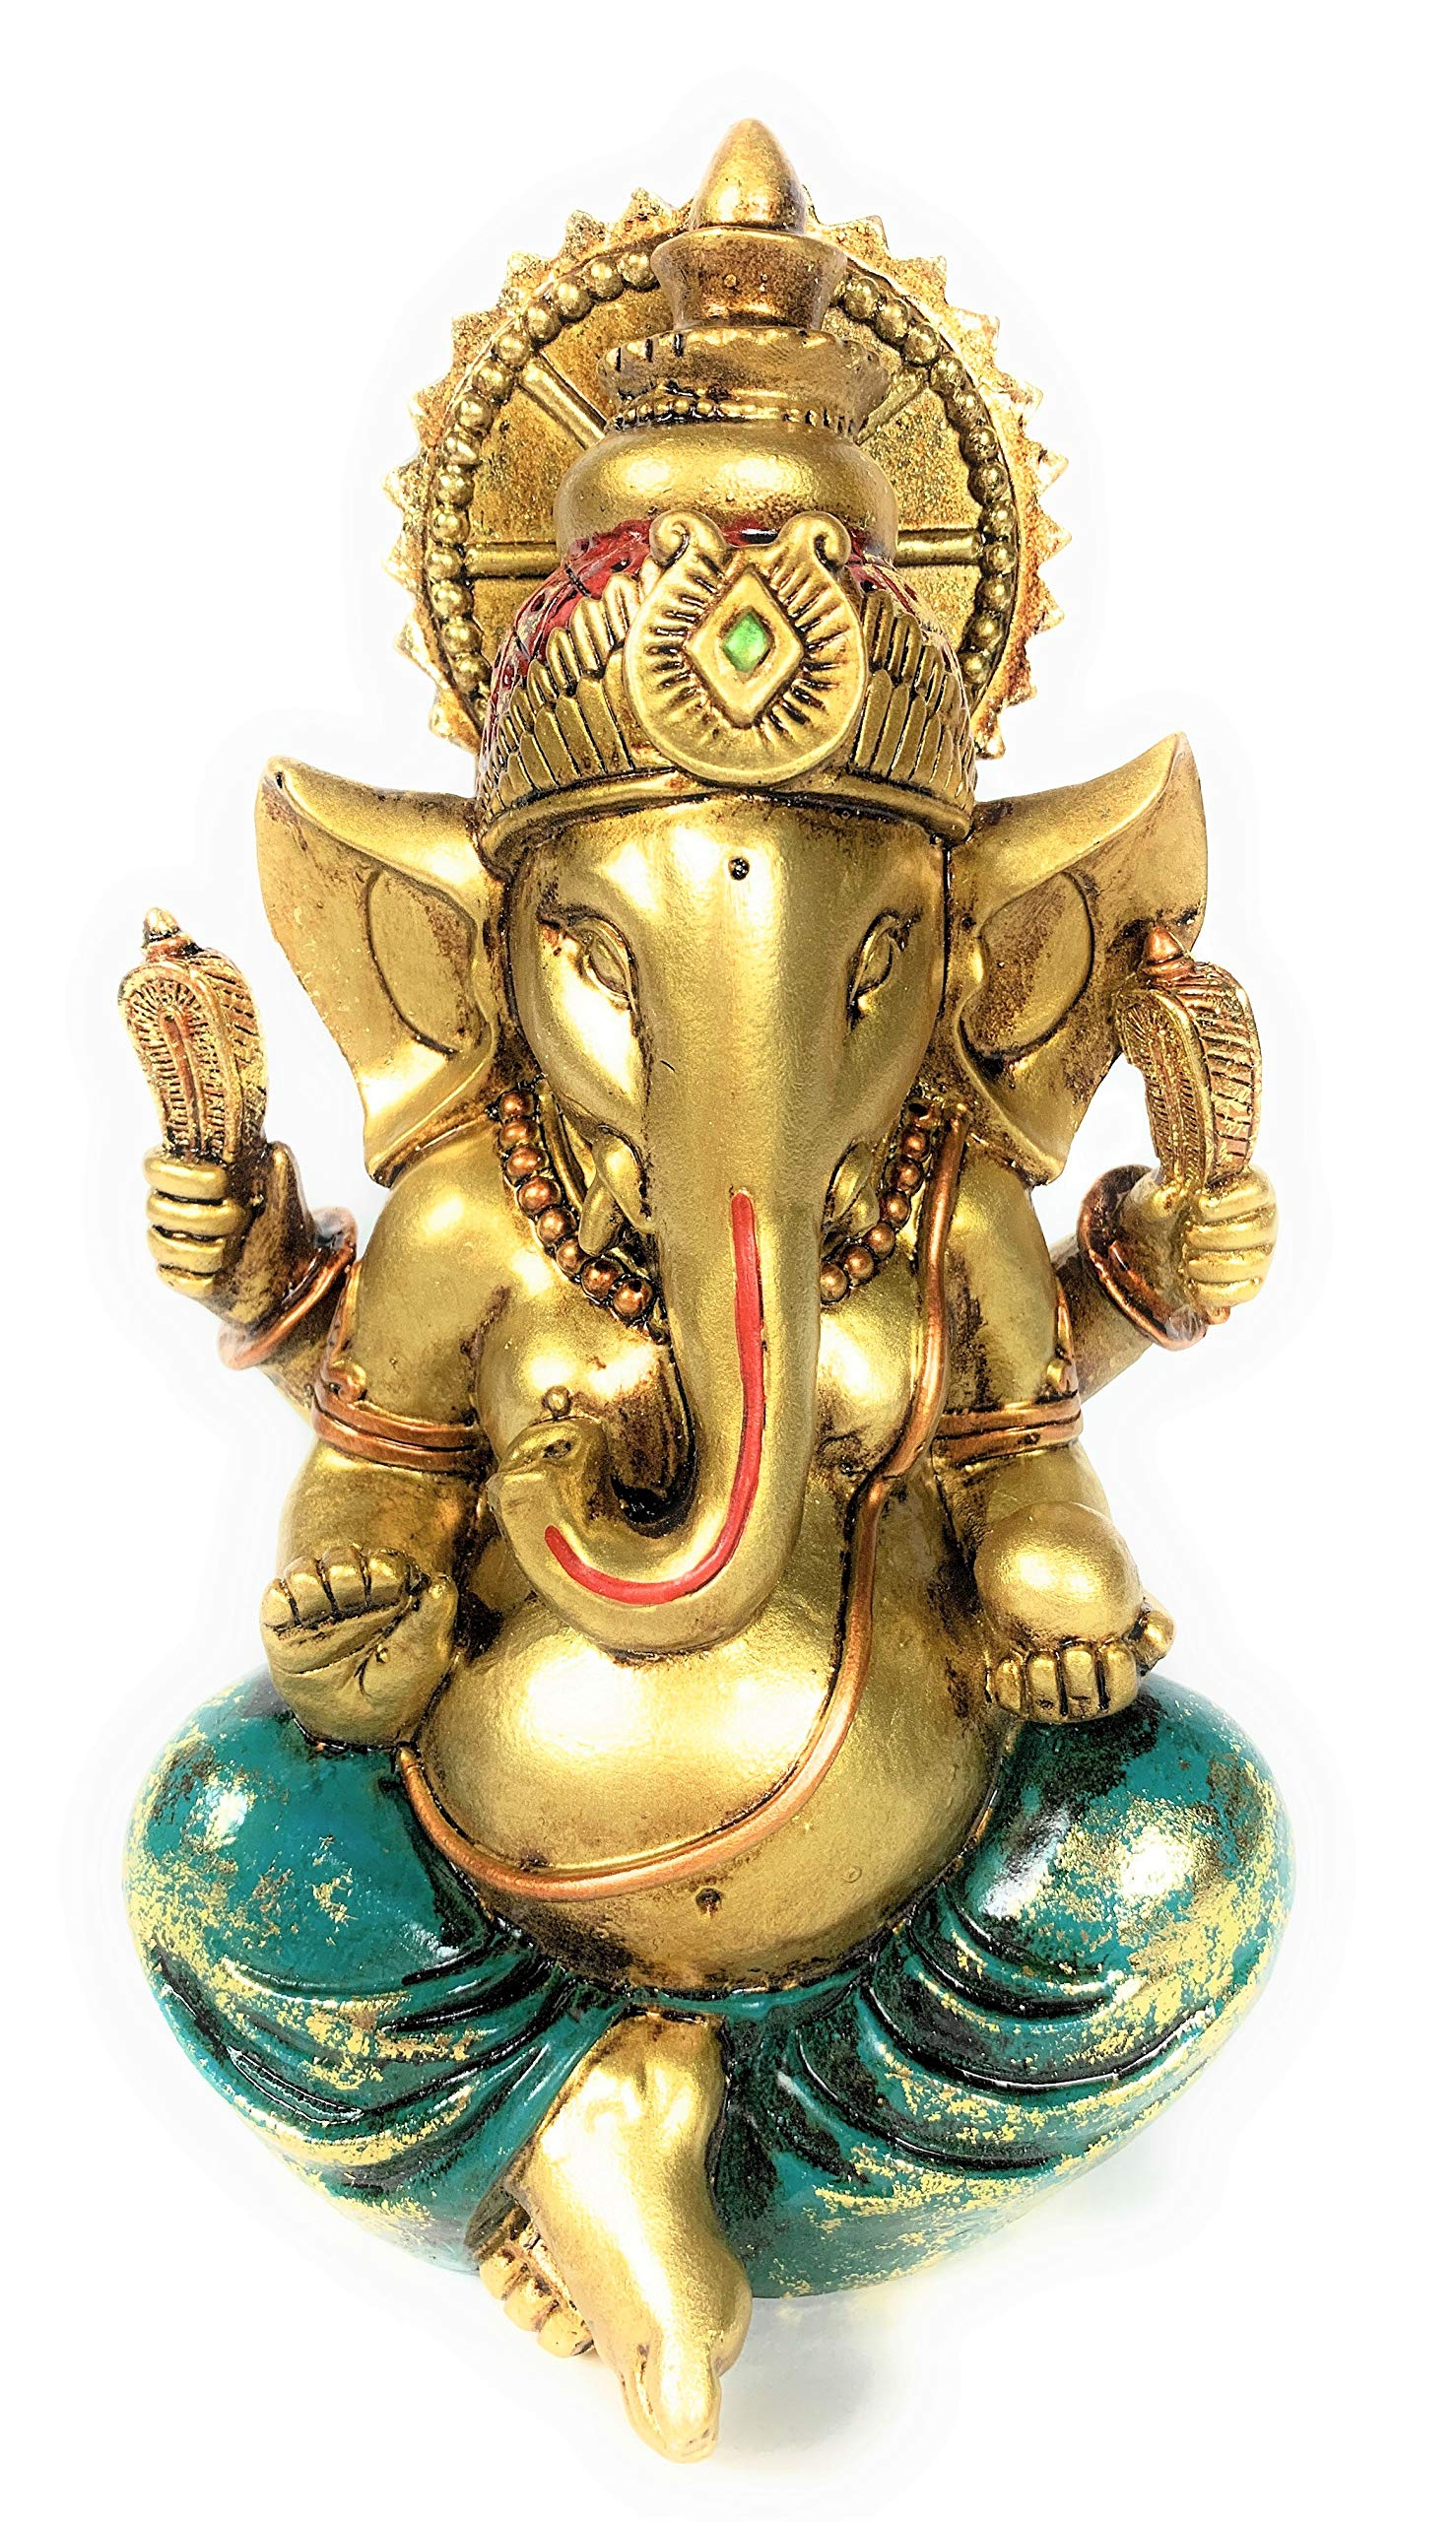 Ganesha Statue Elephant Hindu God of Success Large 9.5-inch-tall Resin Ganesh Idol Hand-Painted in Gold Indian Decor Perfect Gift for Wedding and Diwali Decoration by HINDU ORIGINALS